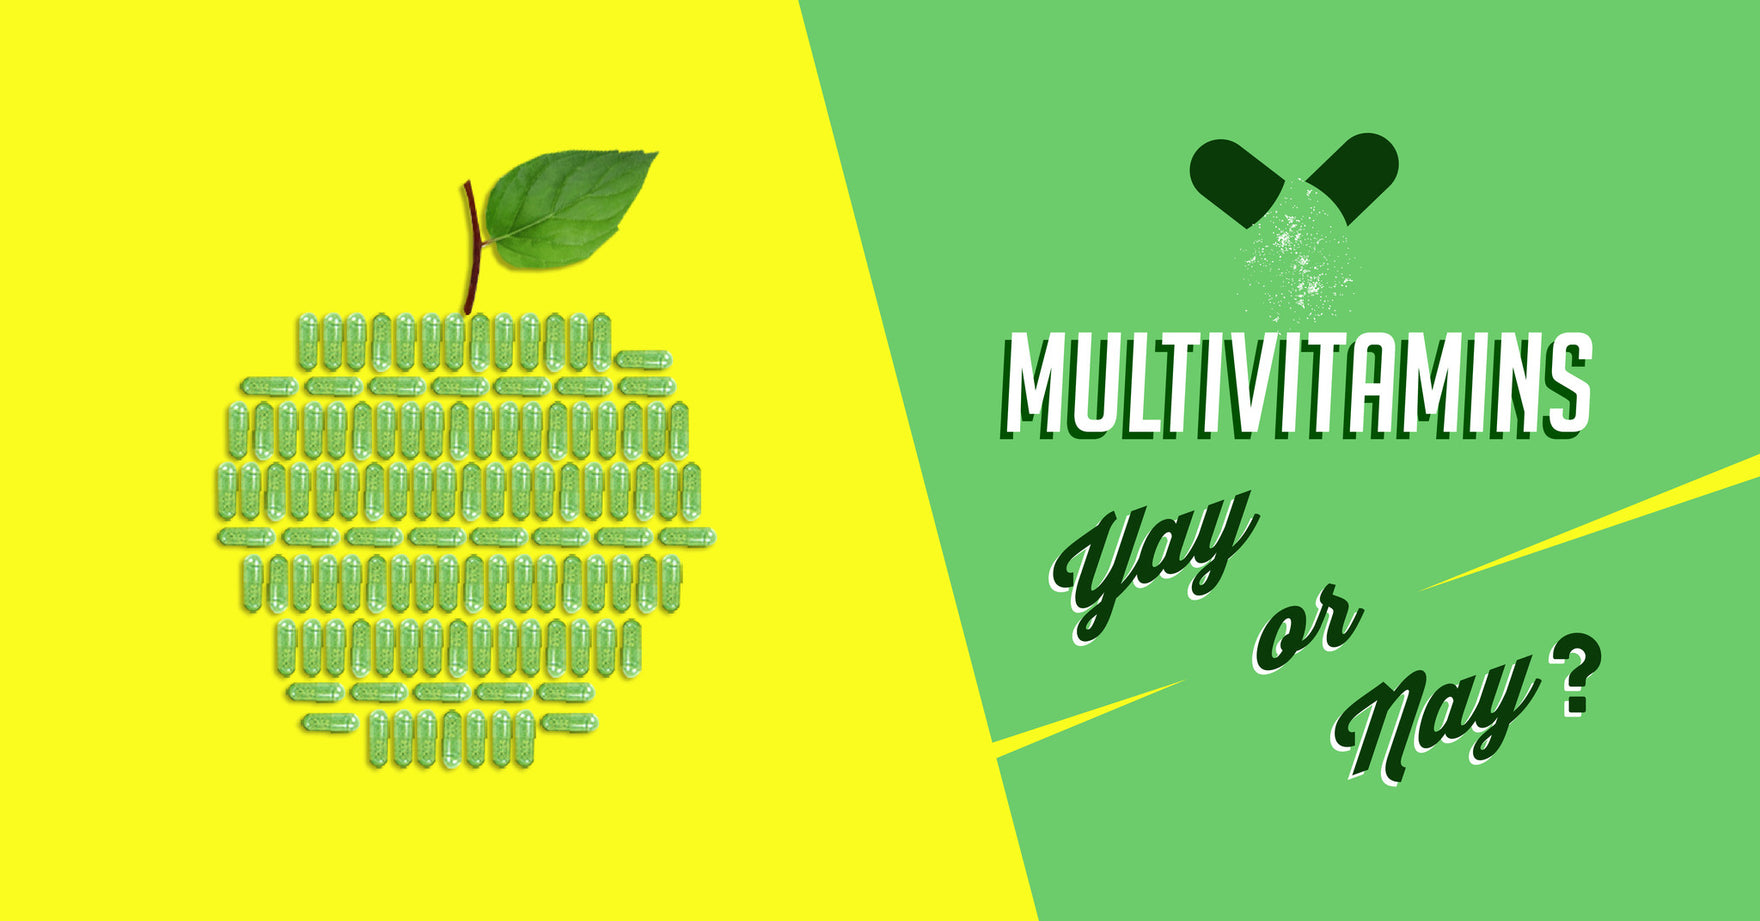 Multivitamins: Yay or Nay?